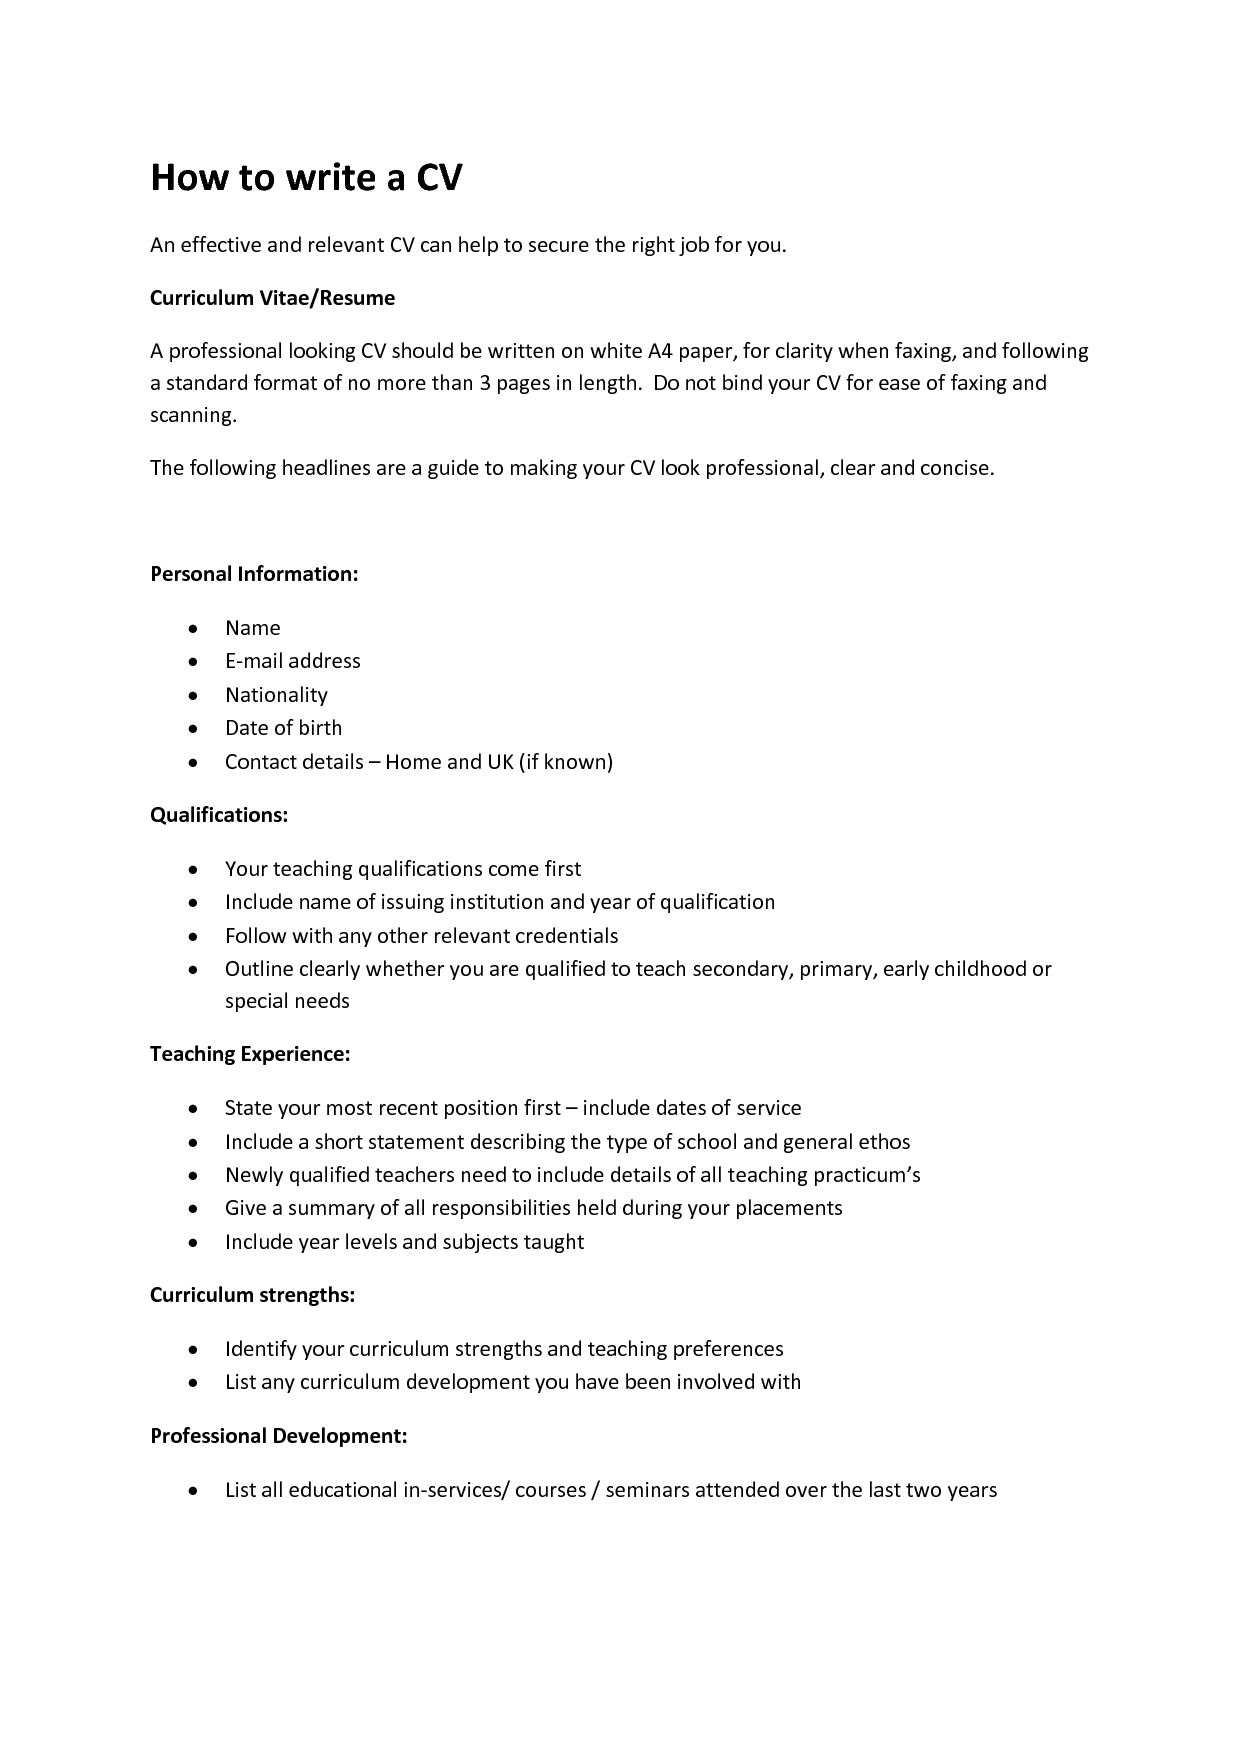 How To Write An Resume Letter Cover Resume Writing A Cv Resume Examples How To Make Resume